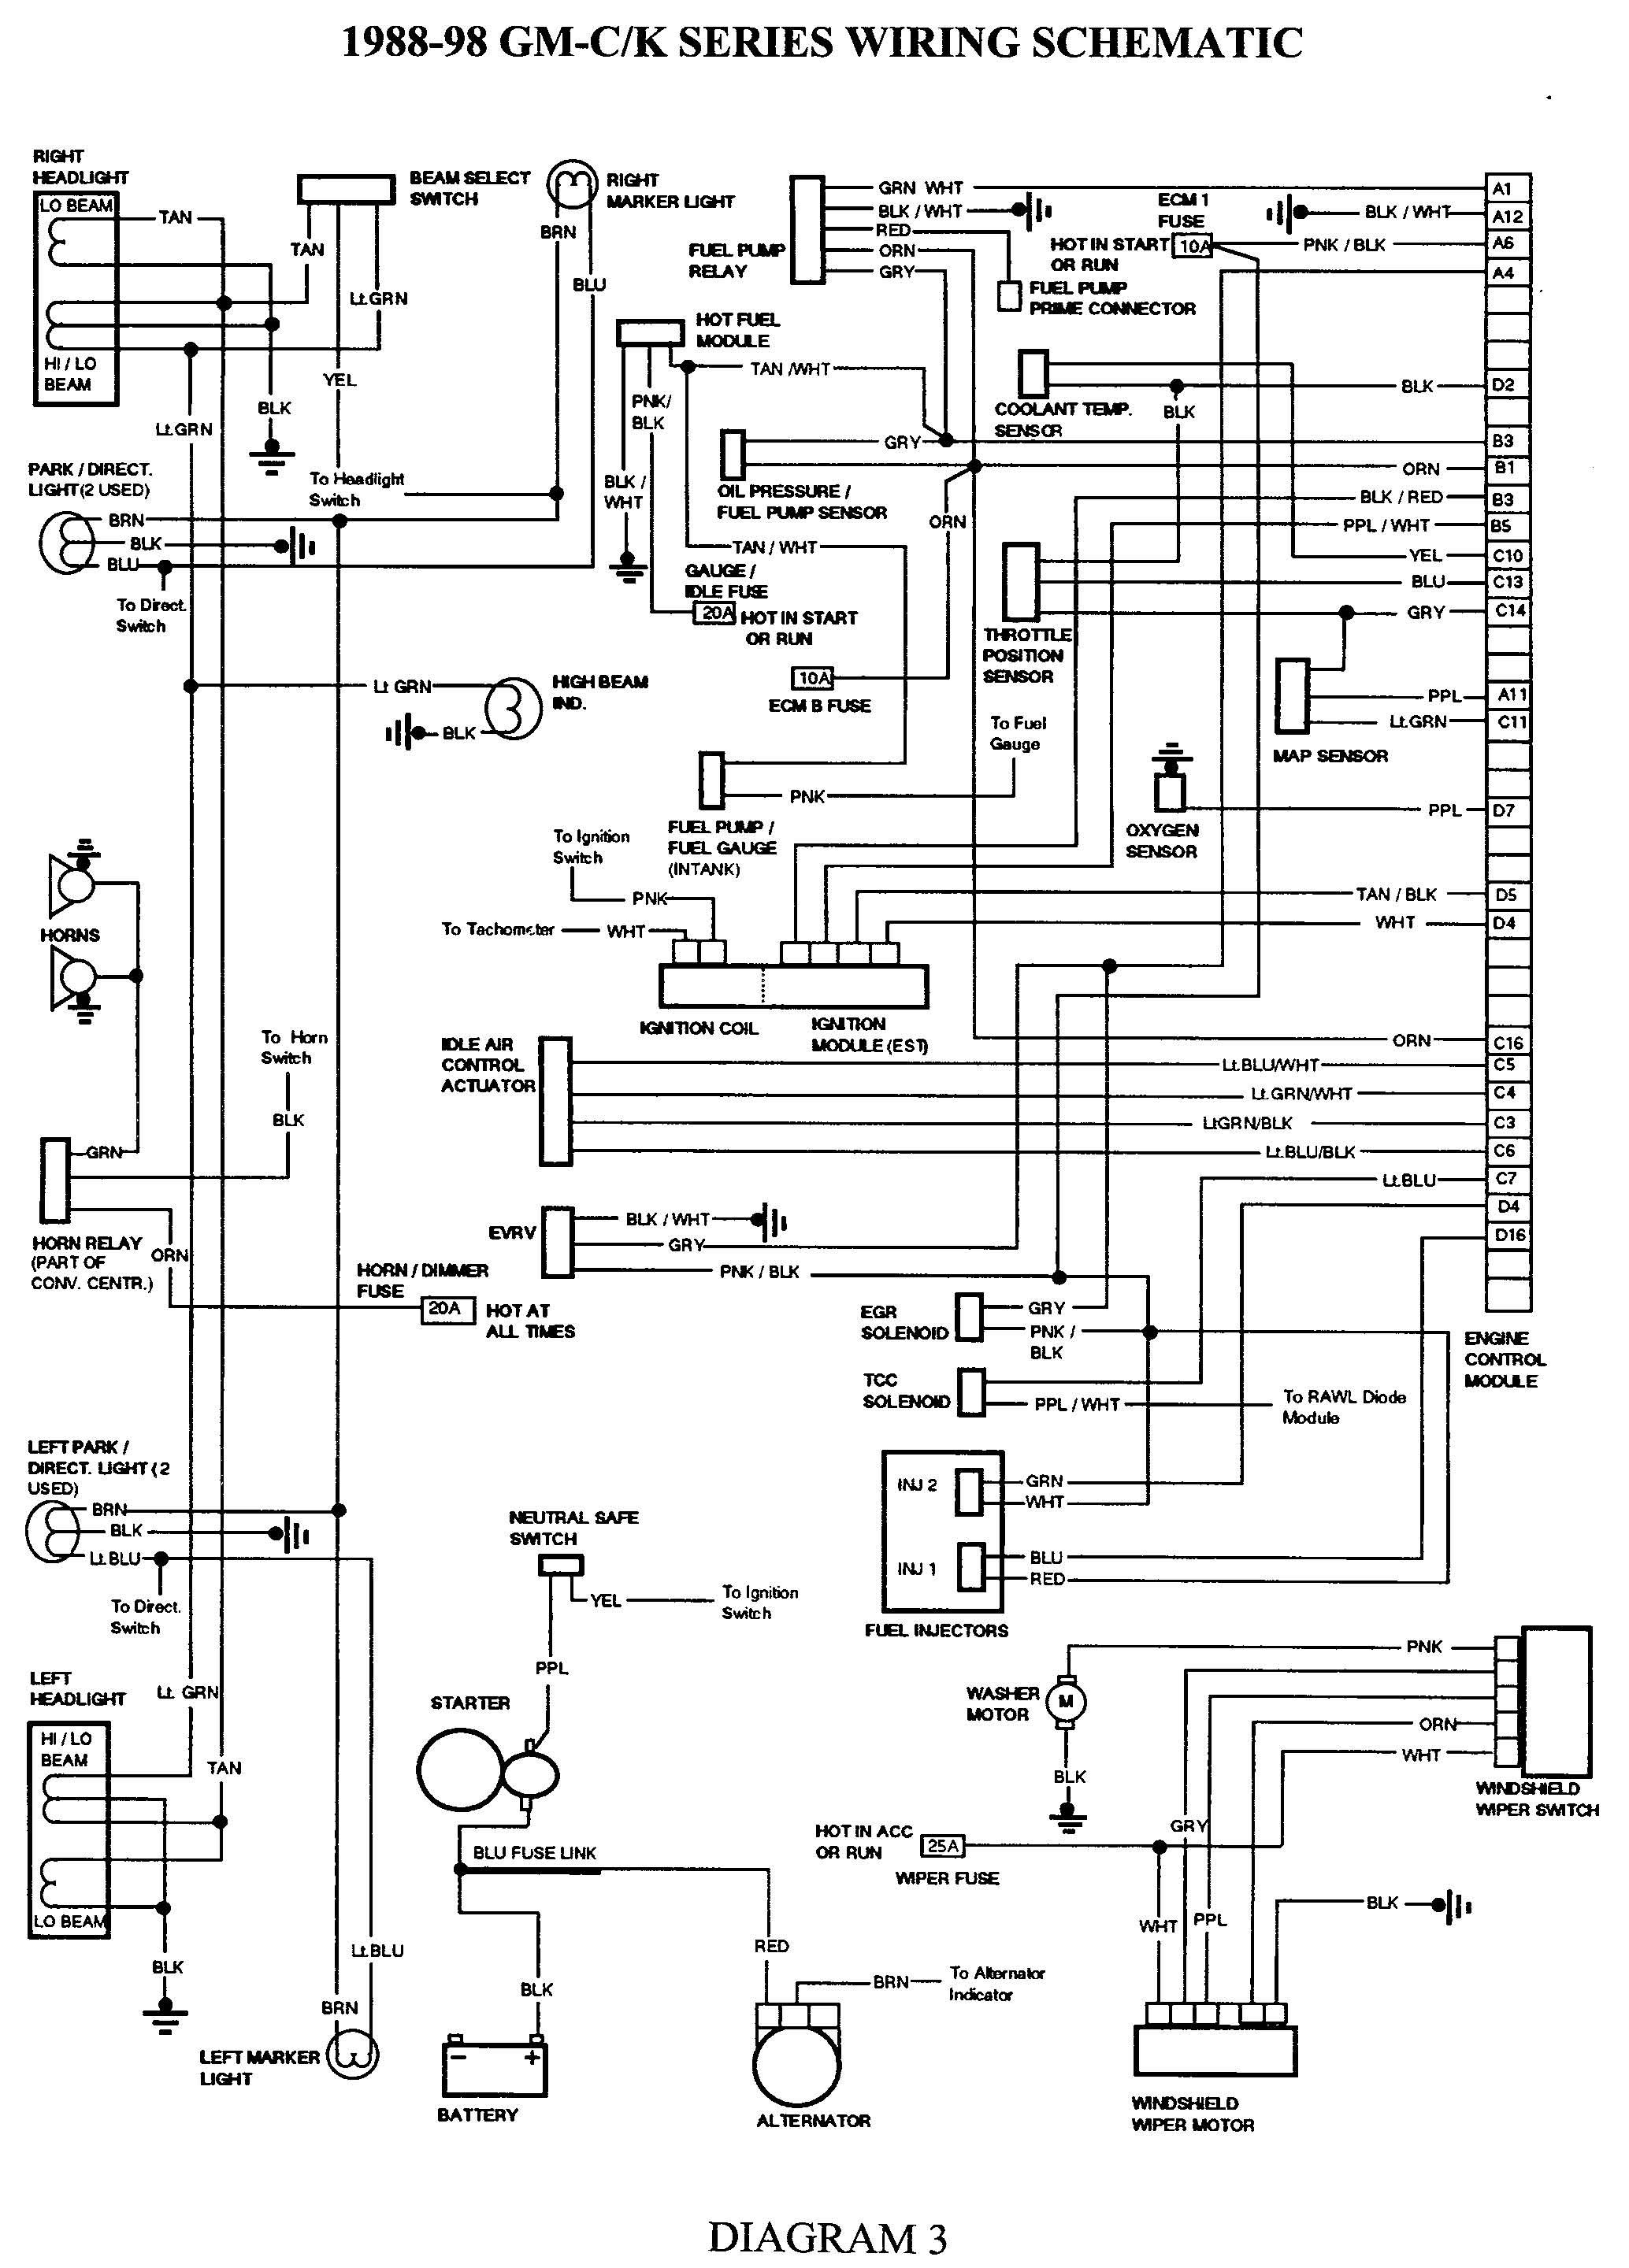 b2f2e5dbdc07dada83ef514f6d4ce3d4 gmc truck wiring diagrams on gm wiring harness diagram 88 98 kc chevy truck wiring harness diagram at webbmarketing.co